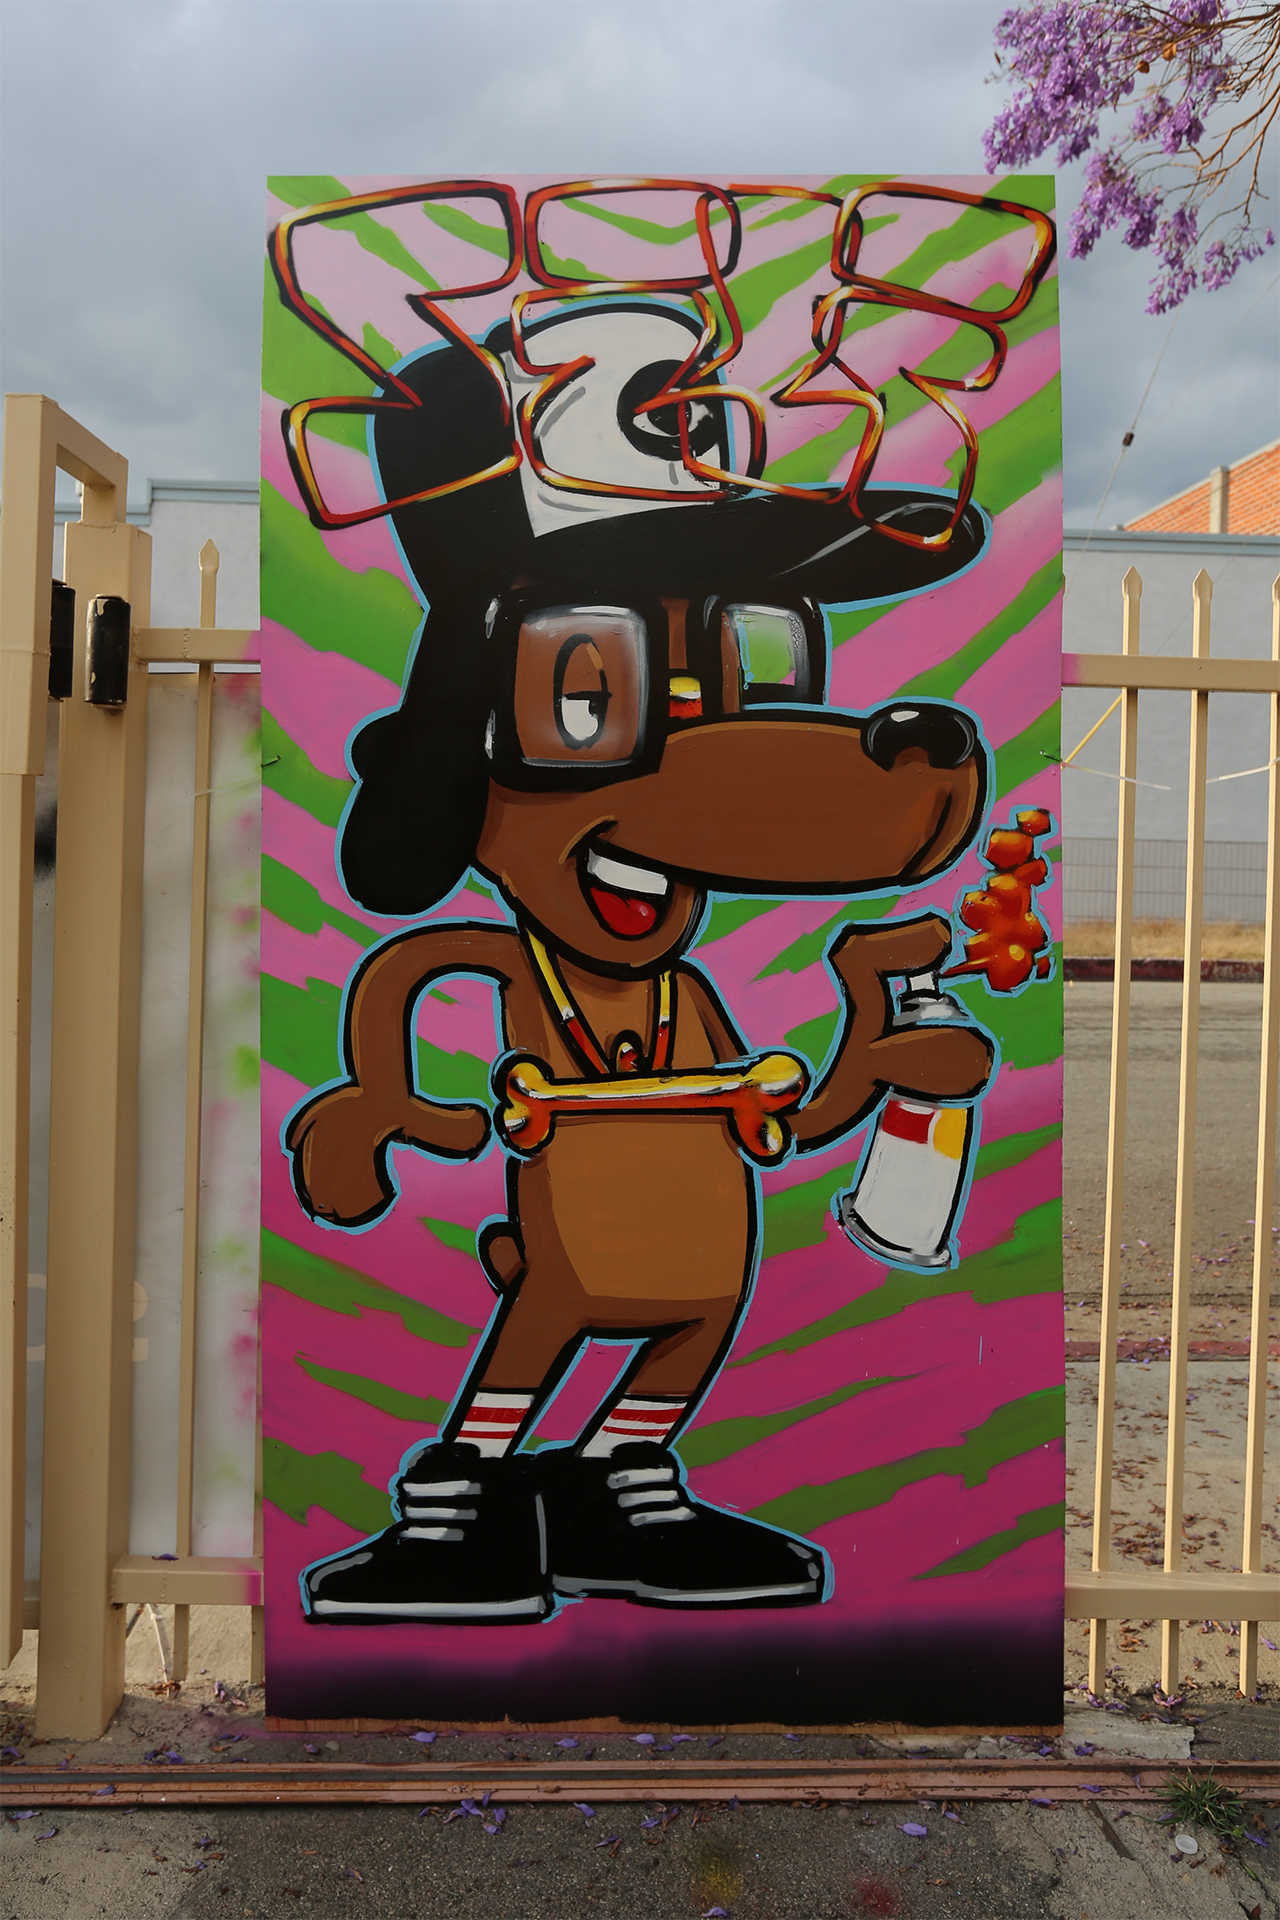 self uno selfuno character art spraypaint dog tiger stripe may 2015